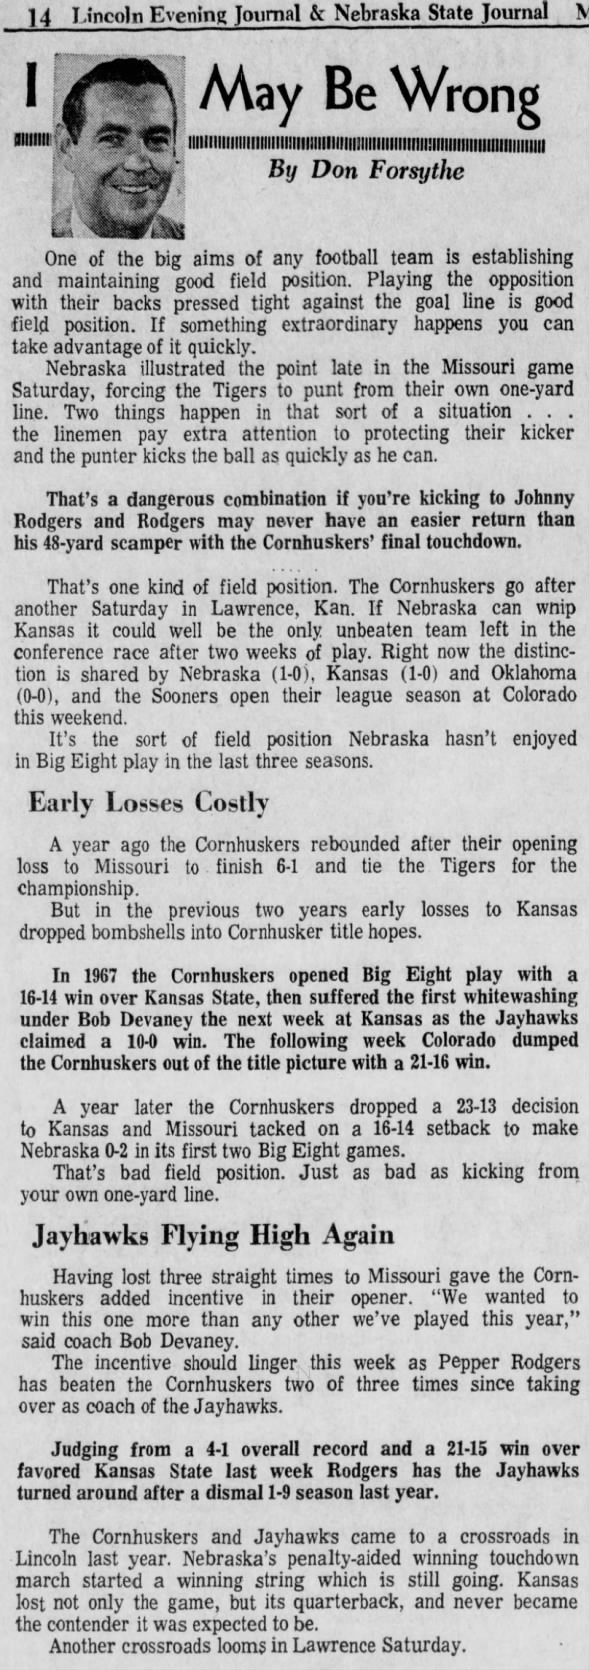 1970.10 Forsythe column, Kansas week Monday